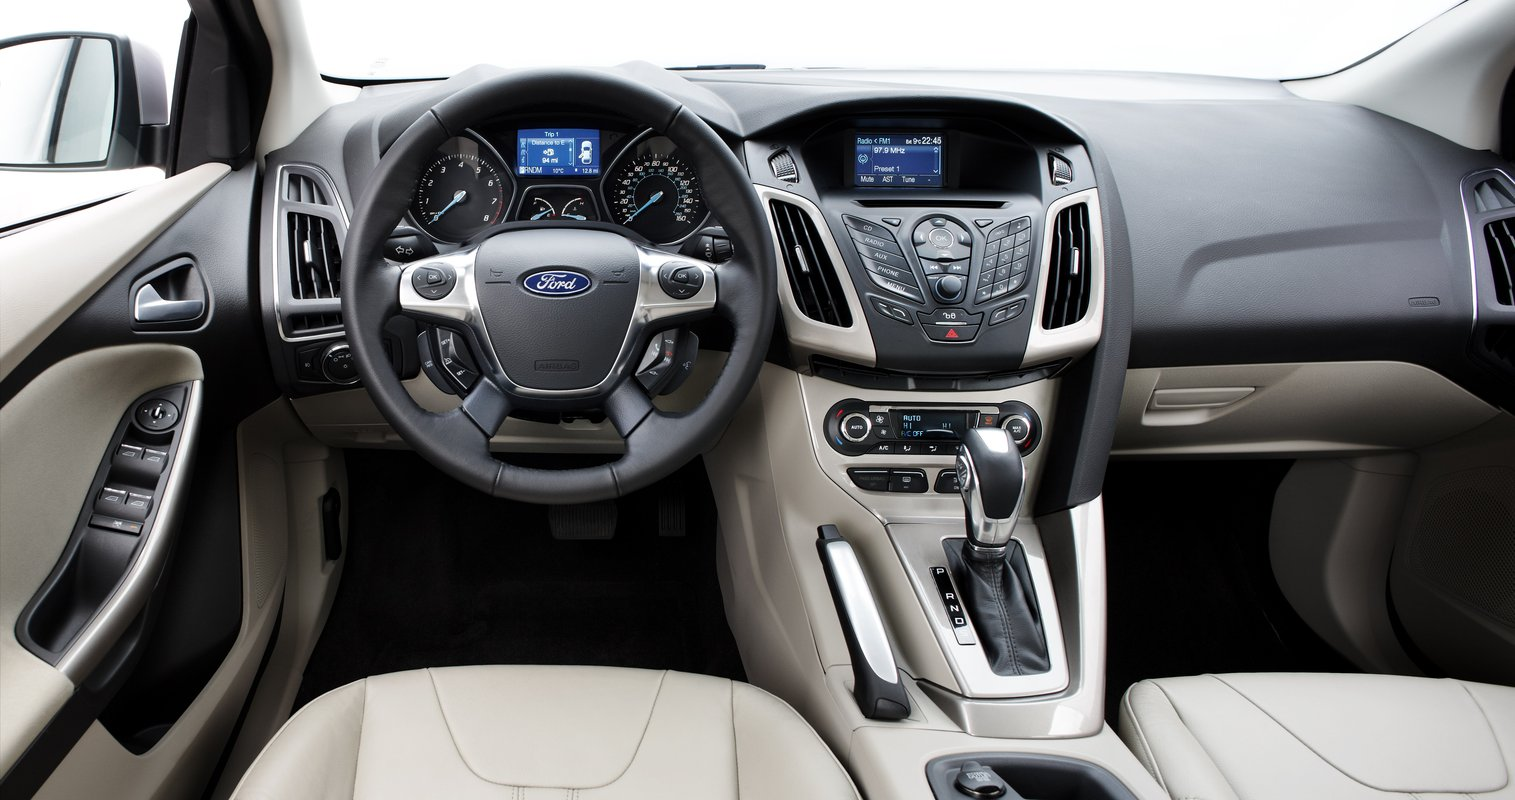 2012 Ford Focus Myford Versus Myford Touch